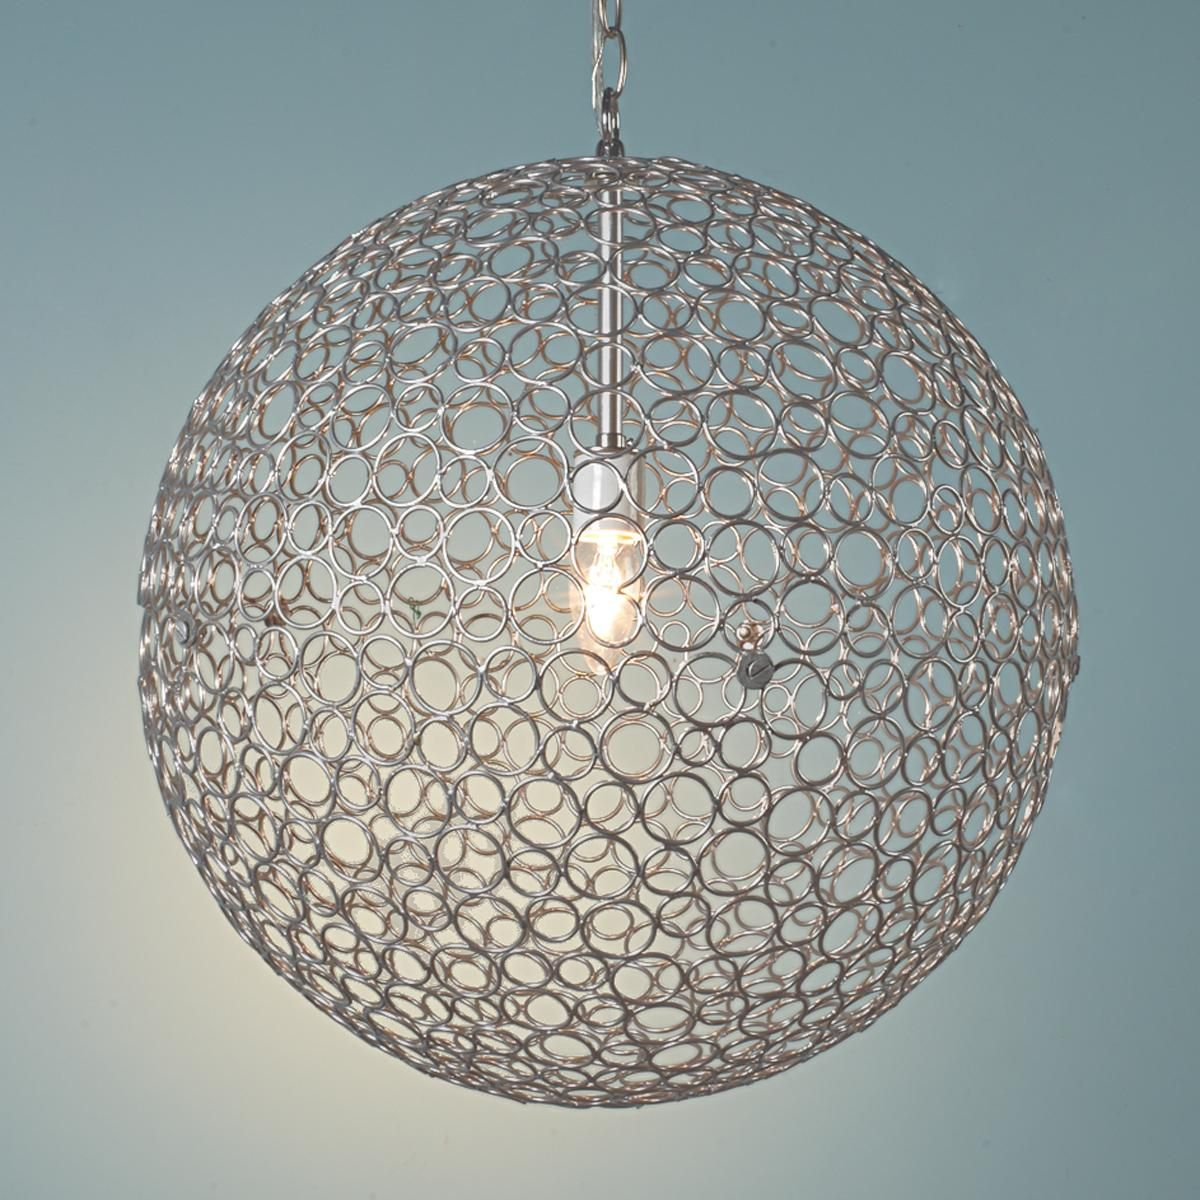 circles sphere pendant light large very pretty in almost any rh pinterest com